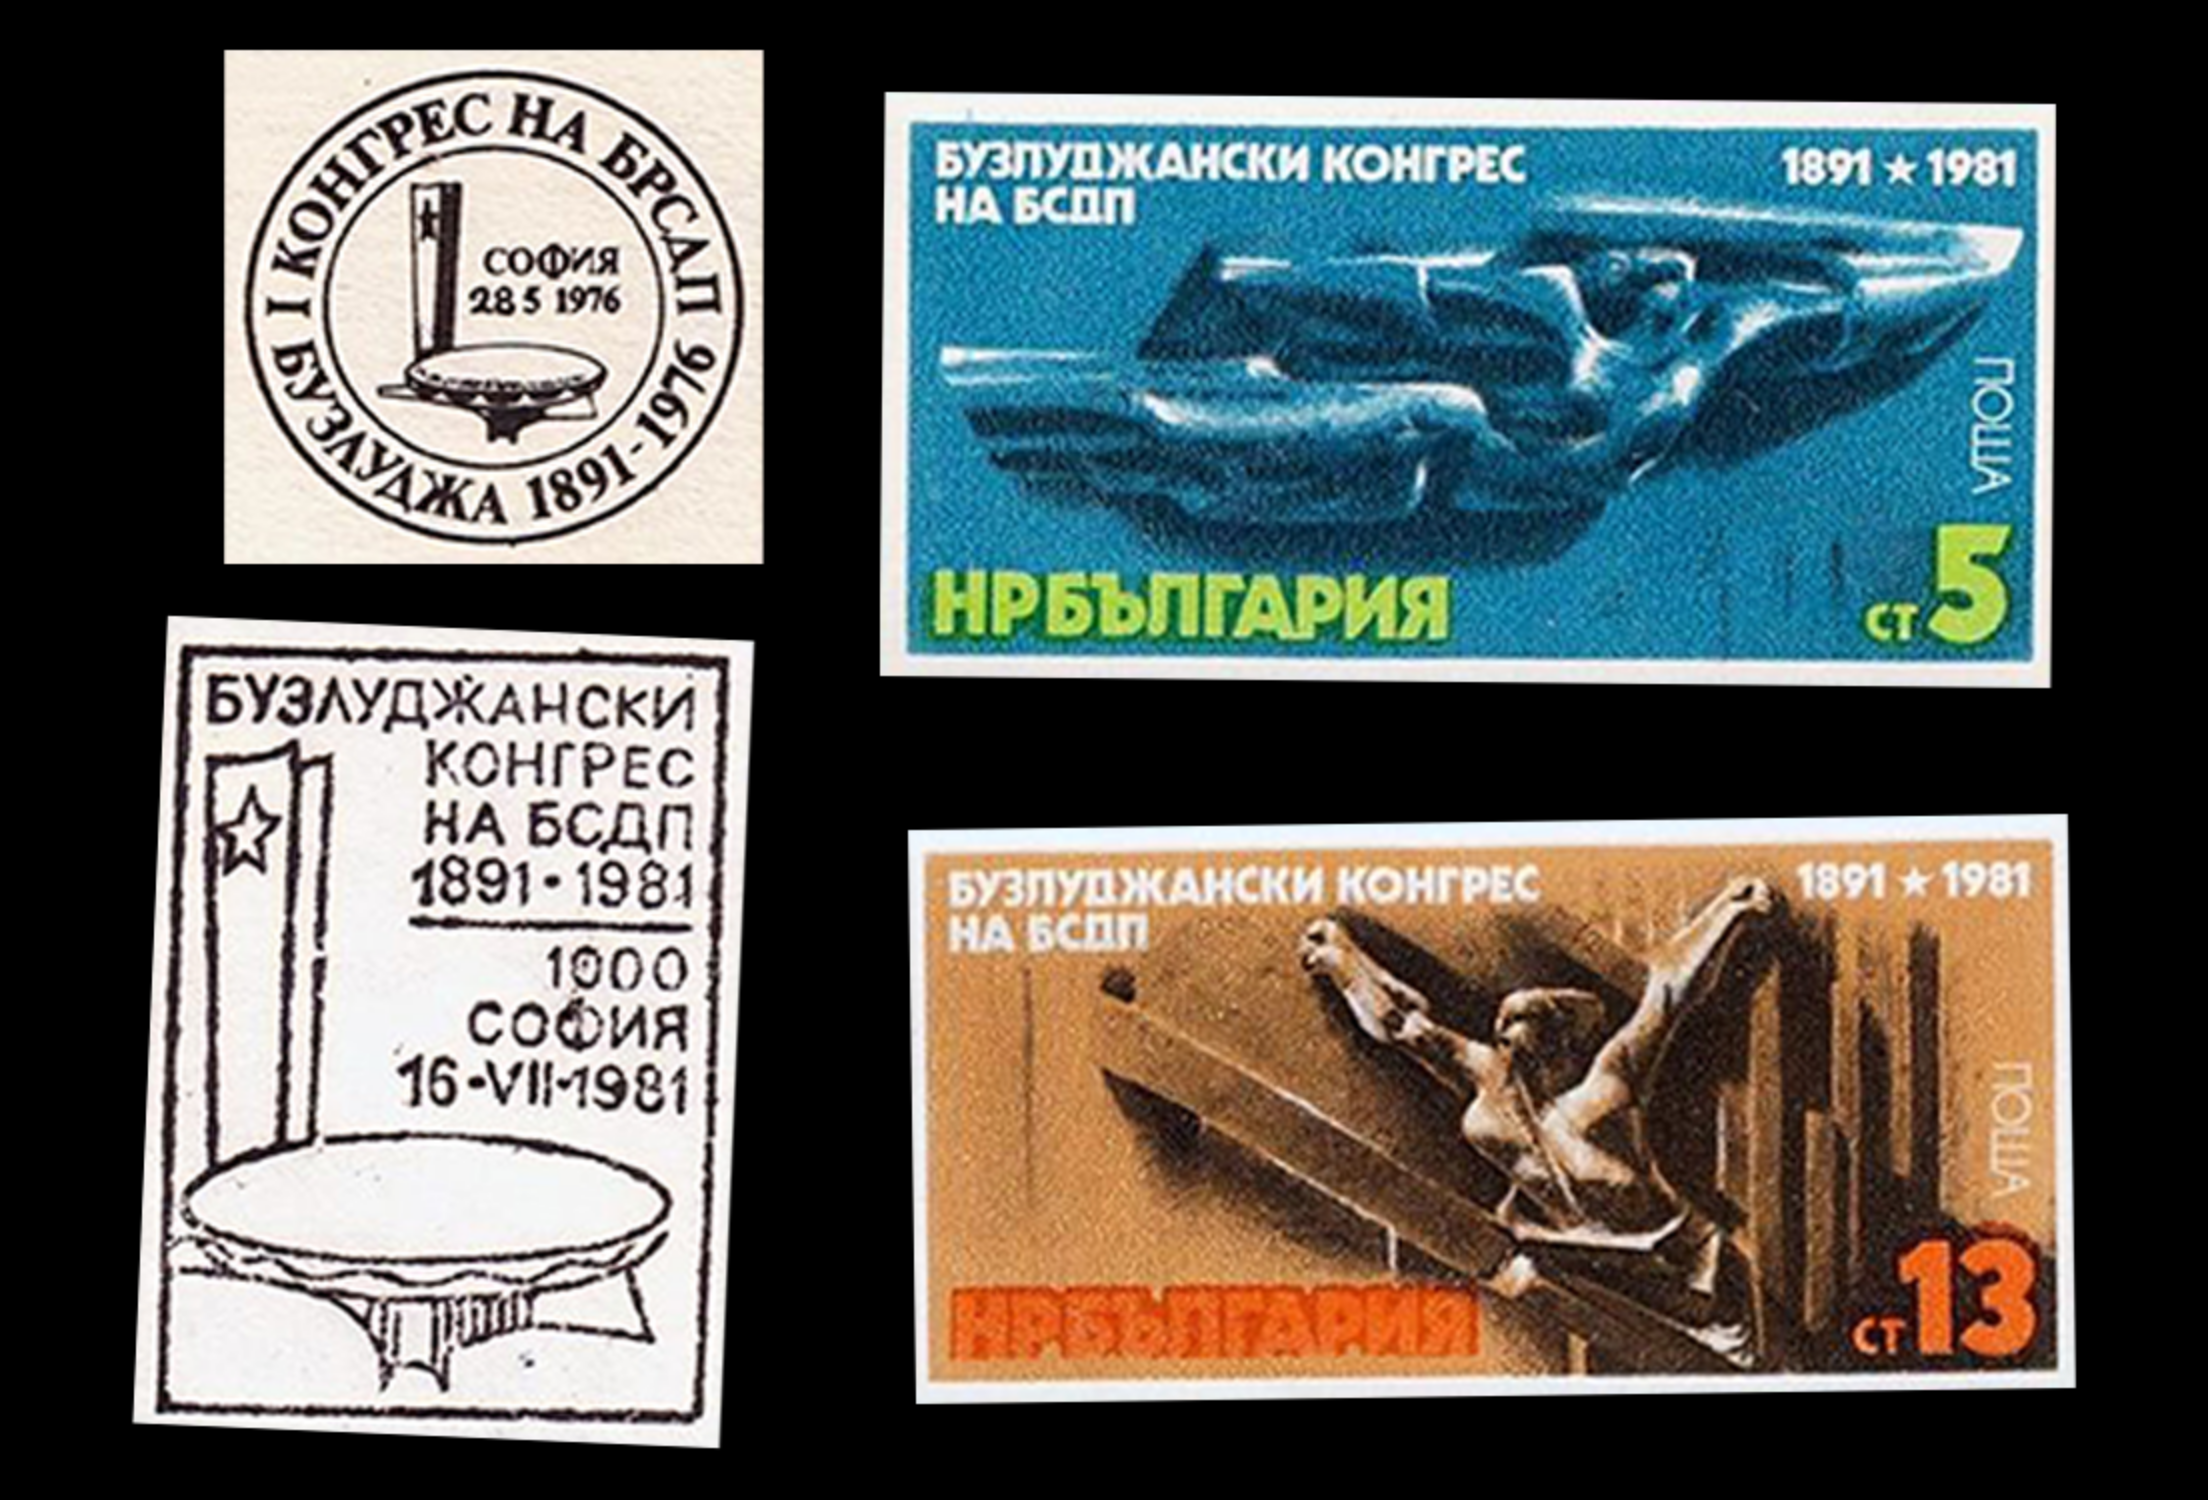 Examples of the commemorative postage stamps sold to raise money for the construction of the Buzludzha monument